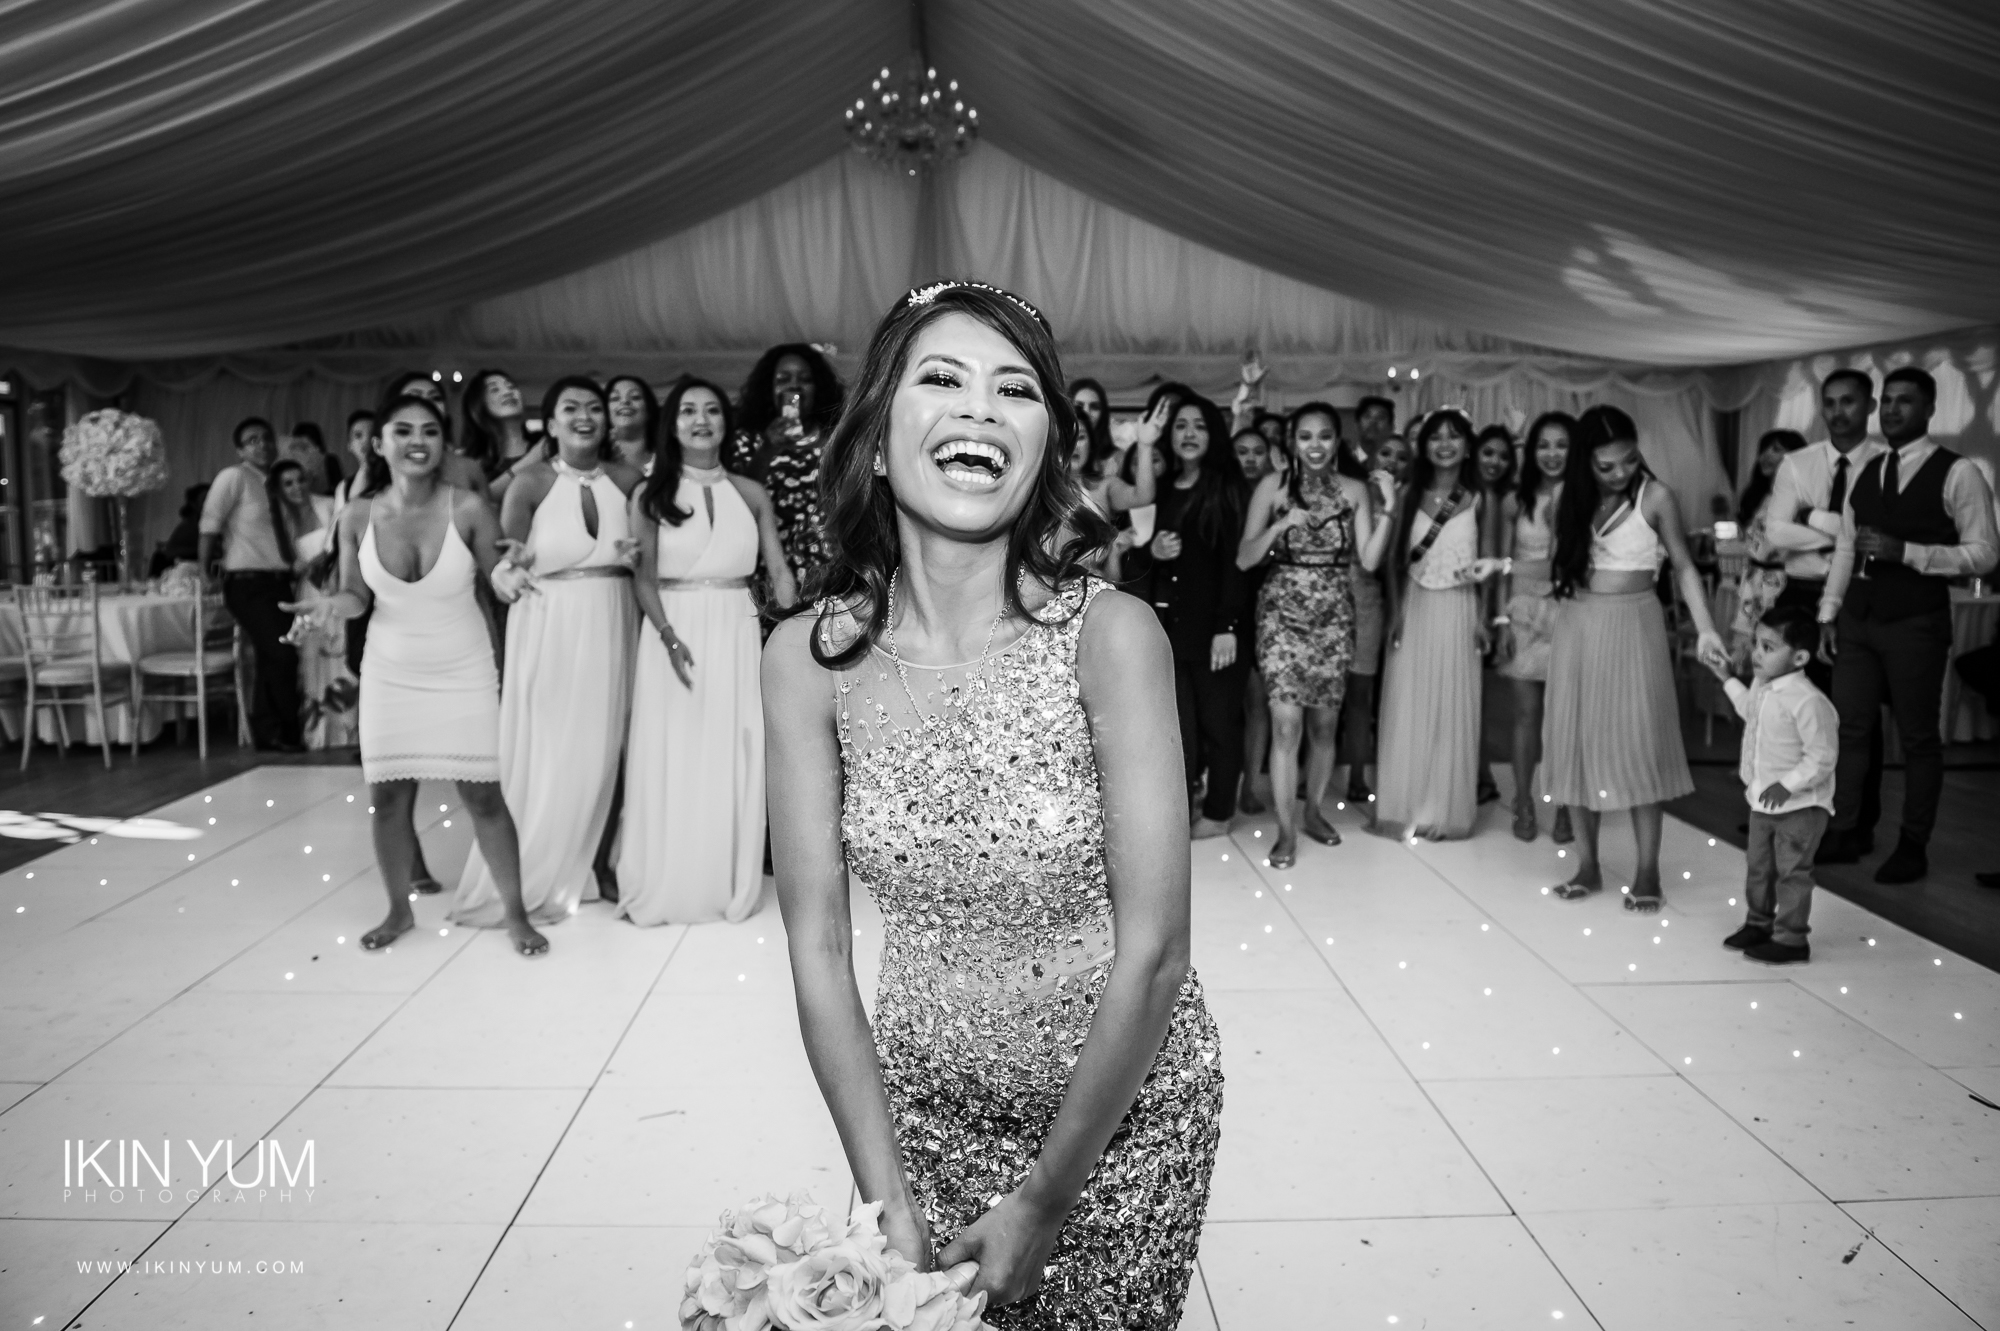 Hylands House Wedding - Ikin Yum Photography-140.jpg